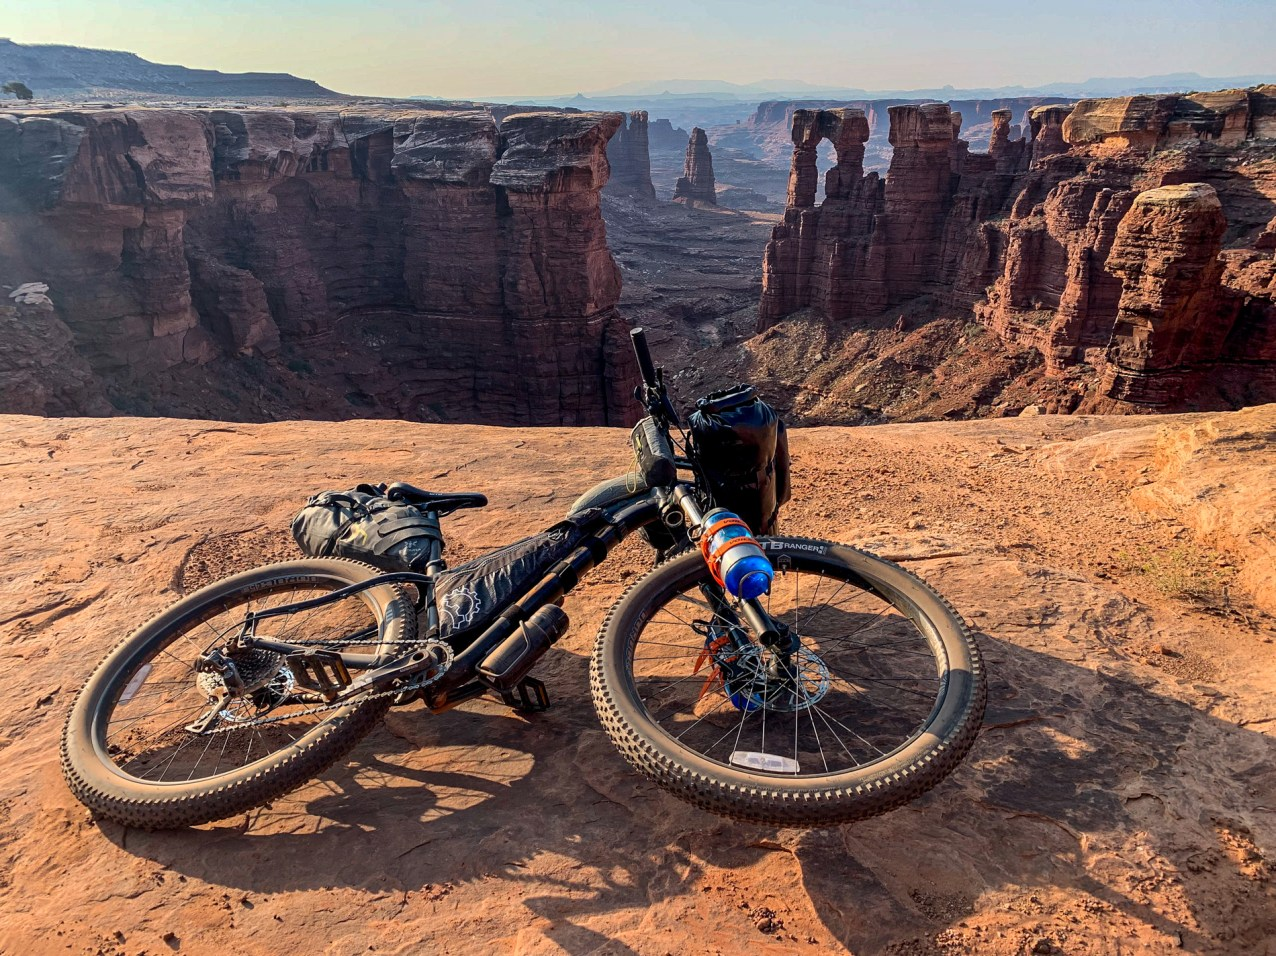 mountain bike laying on the ground on the edge of the canyon with spires and arches in the distance